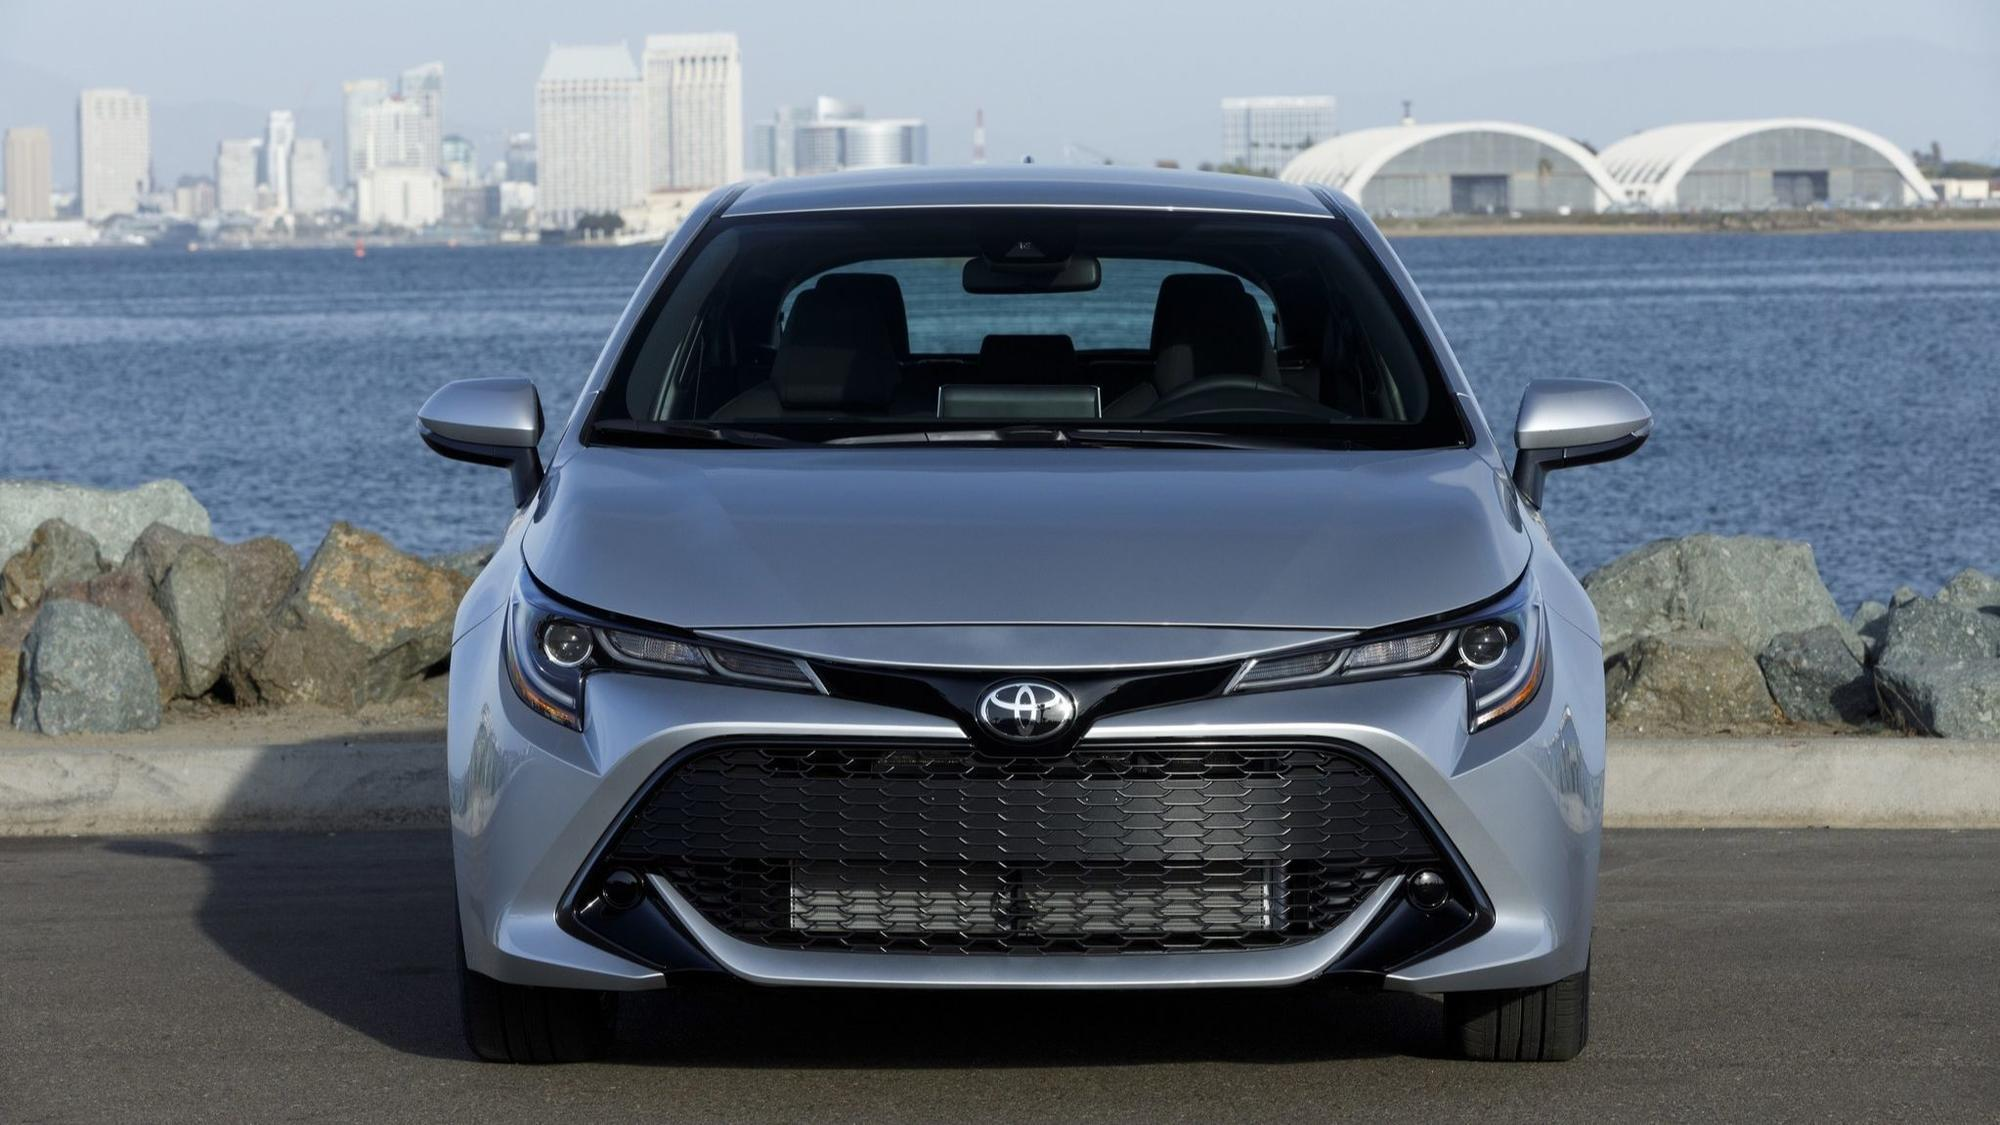 2019 Toyota Corolla Hatchback The Shape Of Things To Come